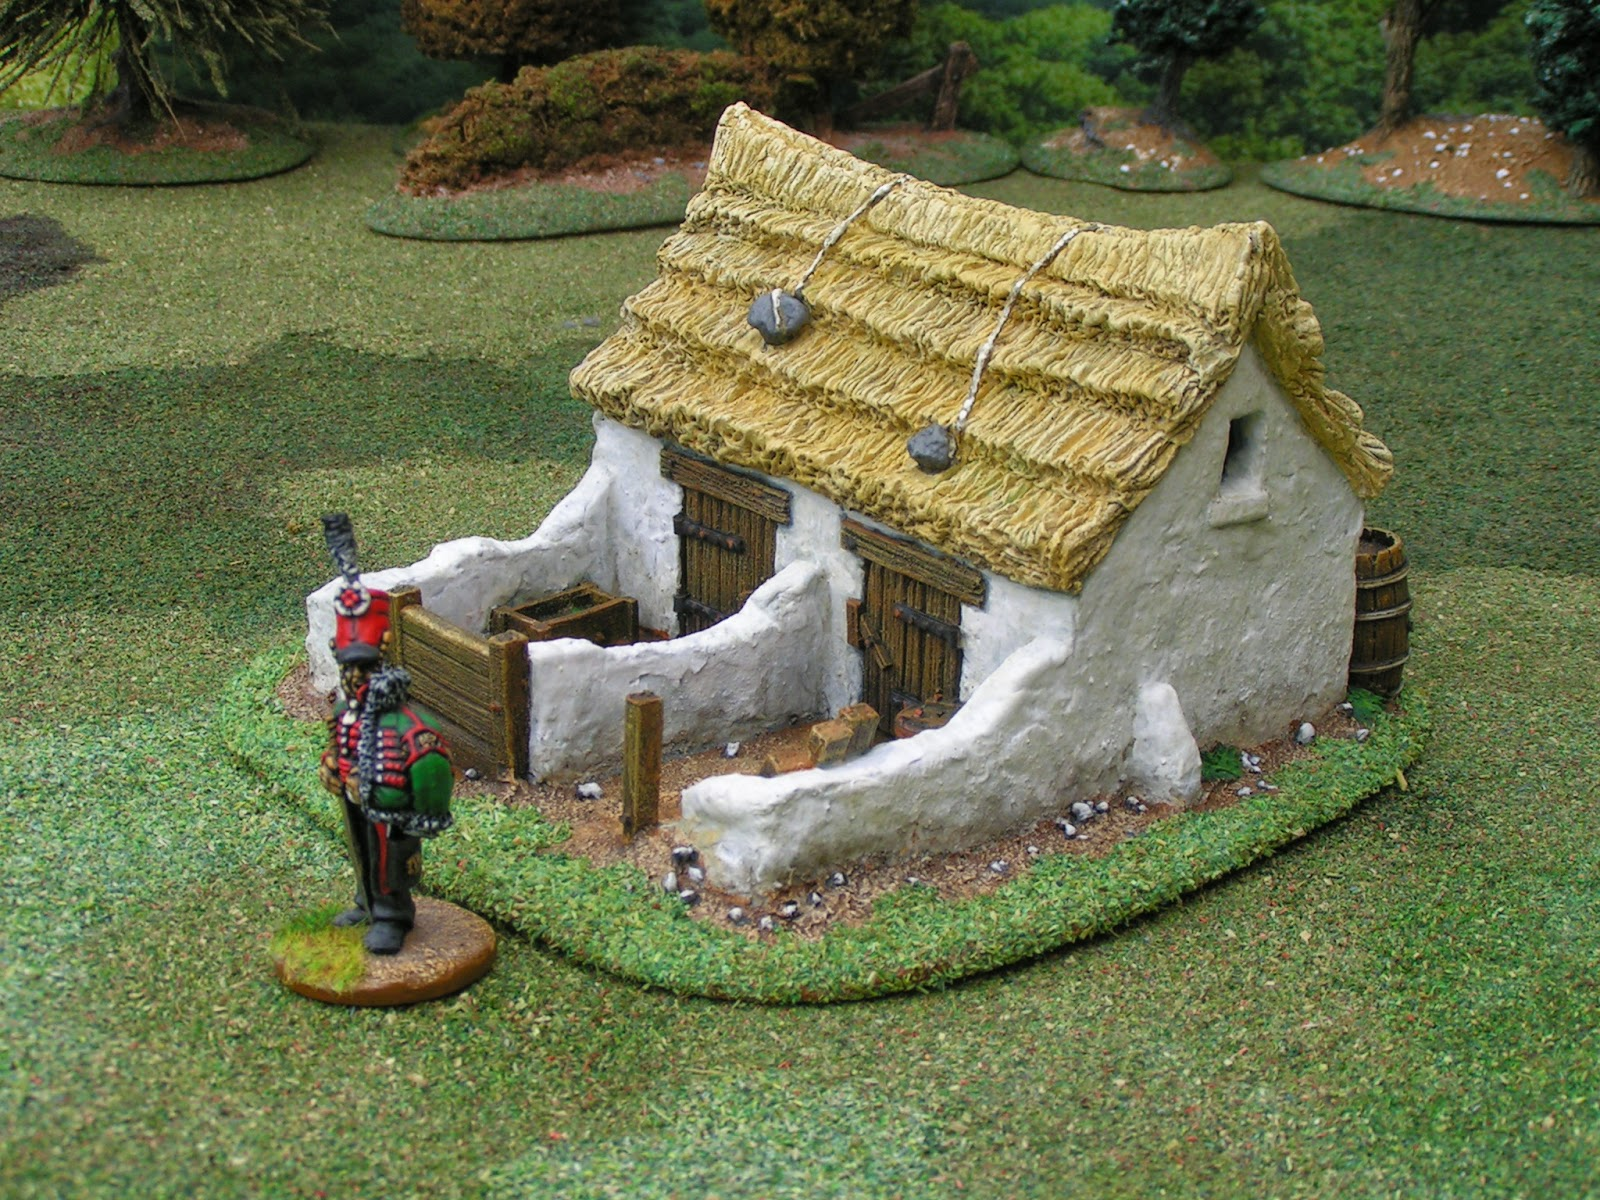 Dampf's modelling page: A Messy Little Pigsty from Building Wargame